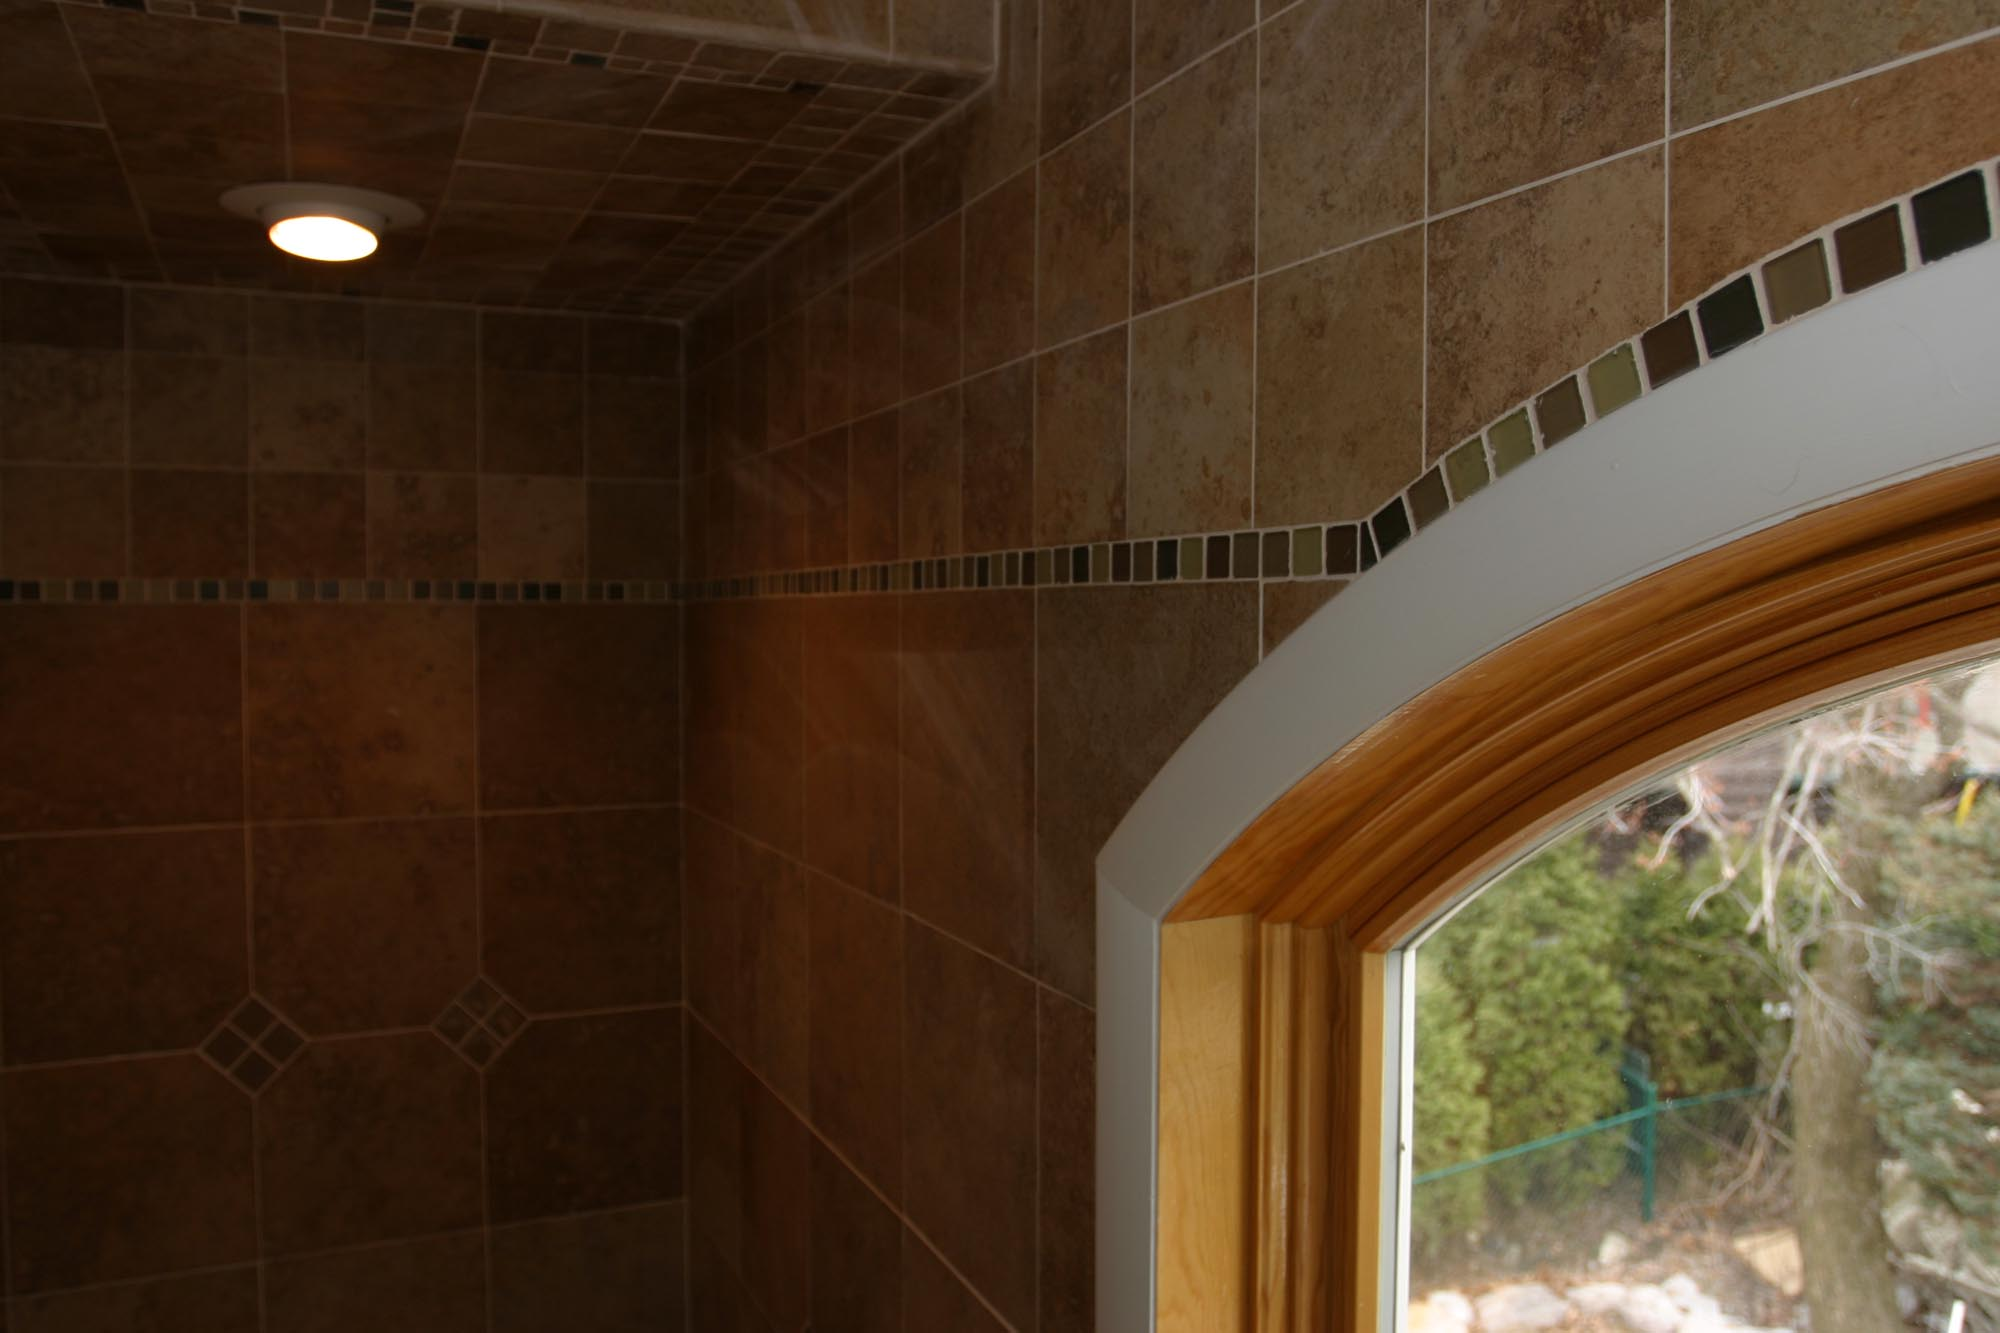 Bathroom wall and ceiling tile with custom glass border